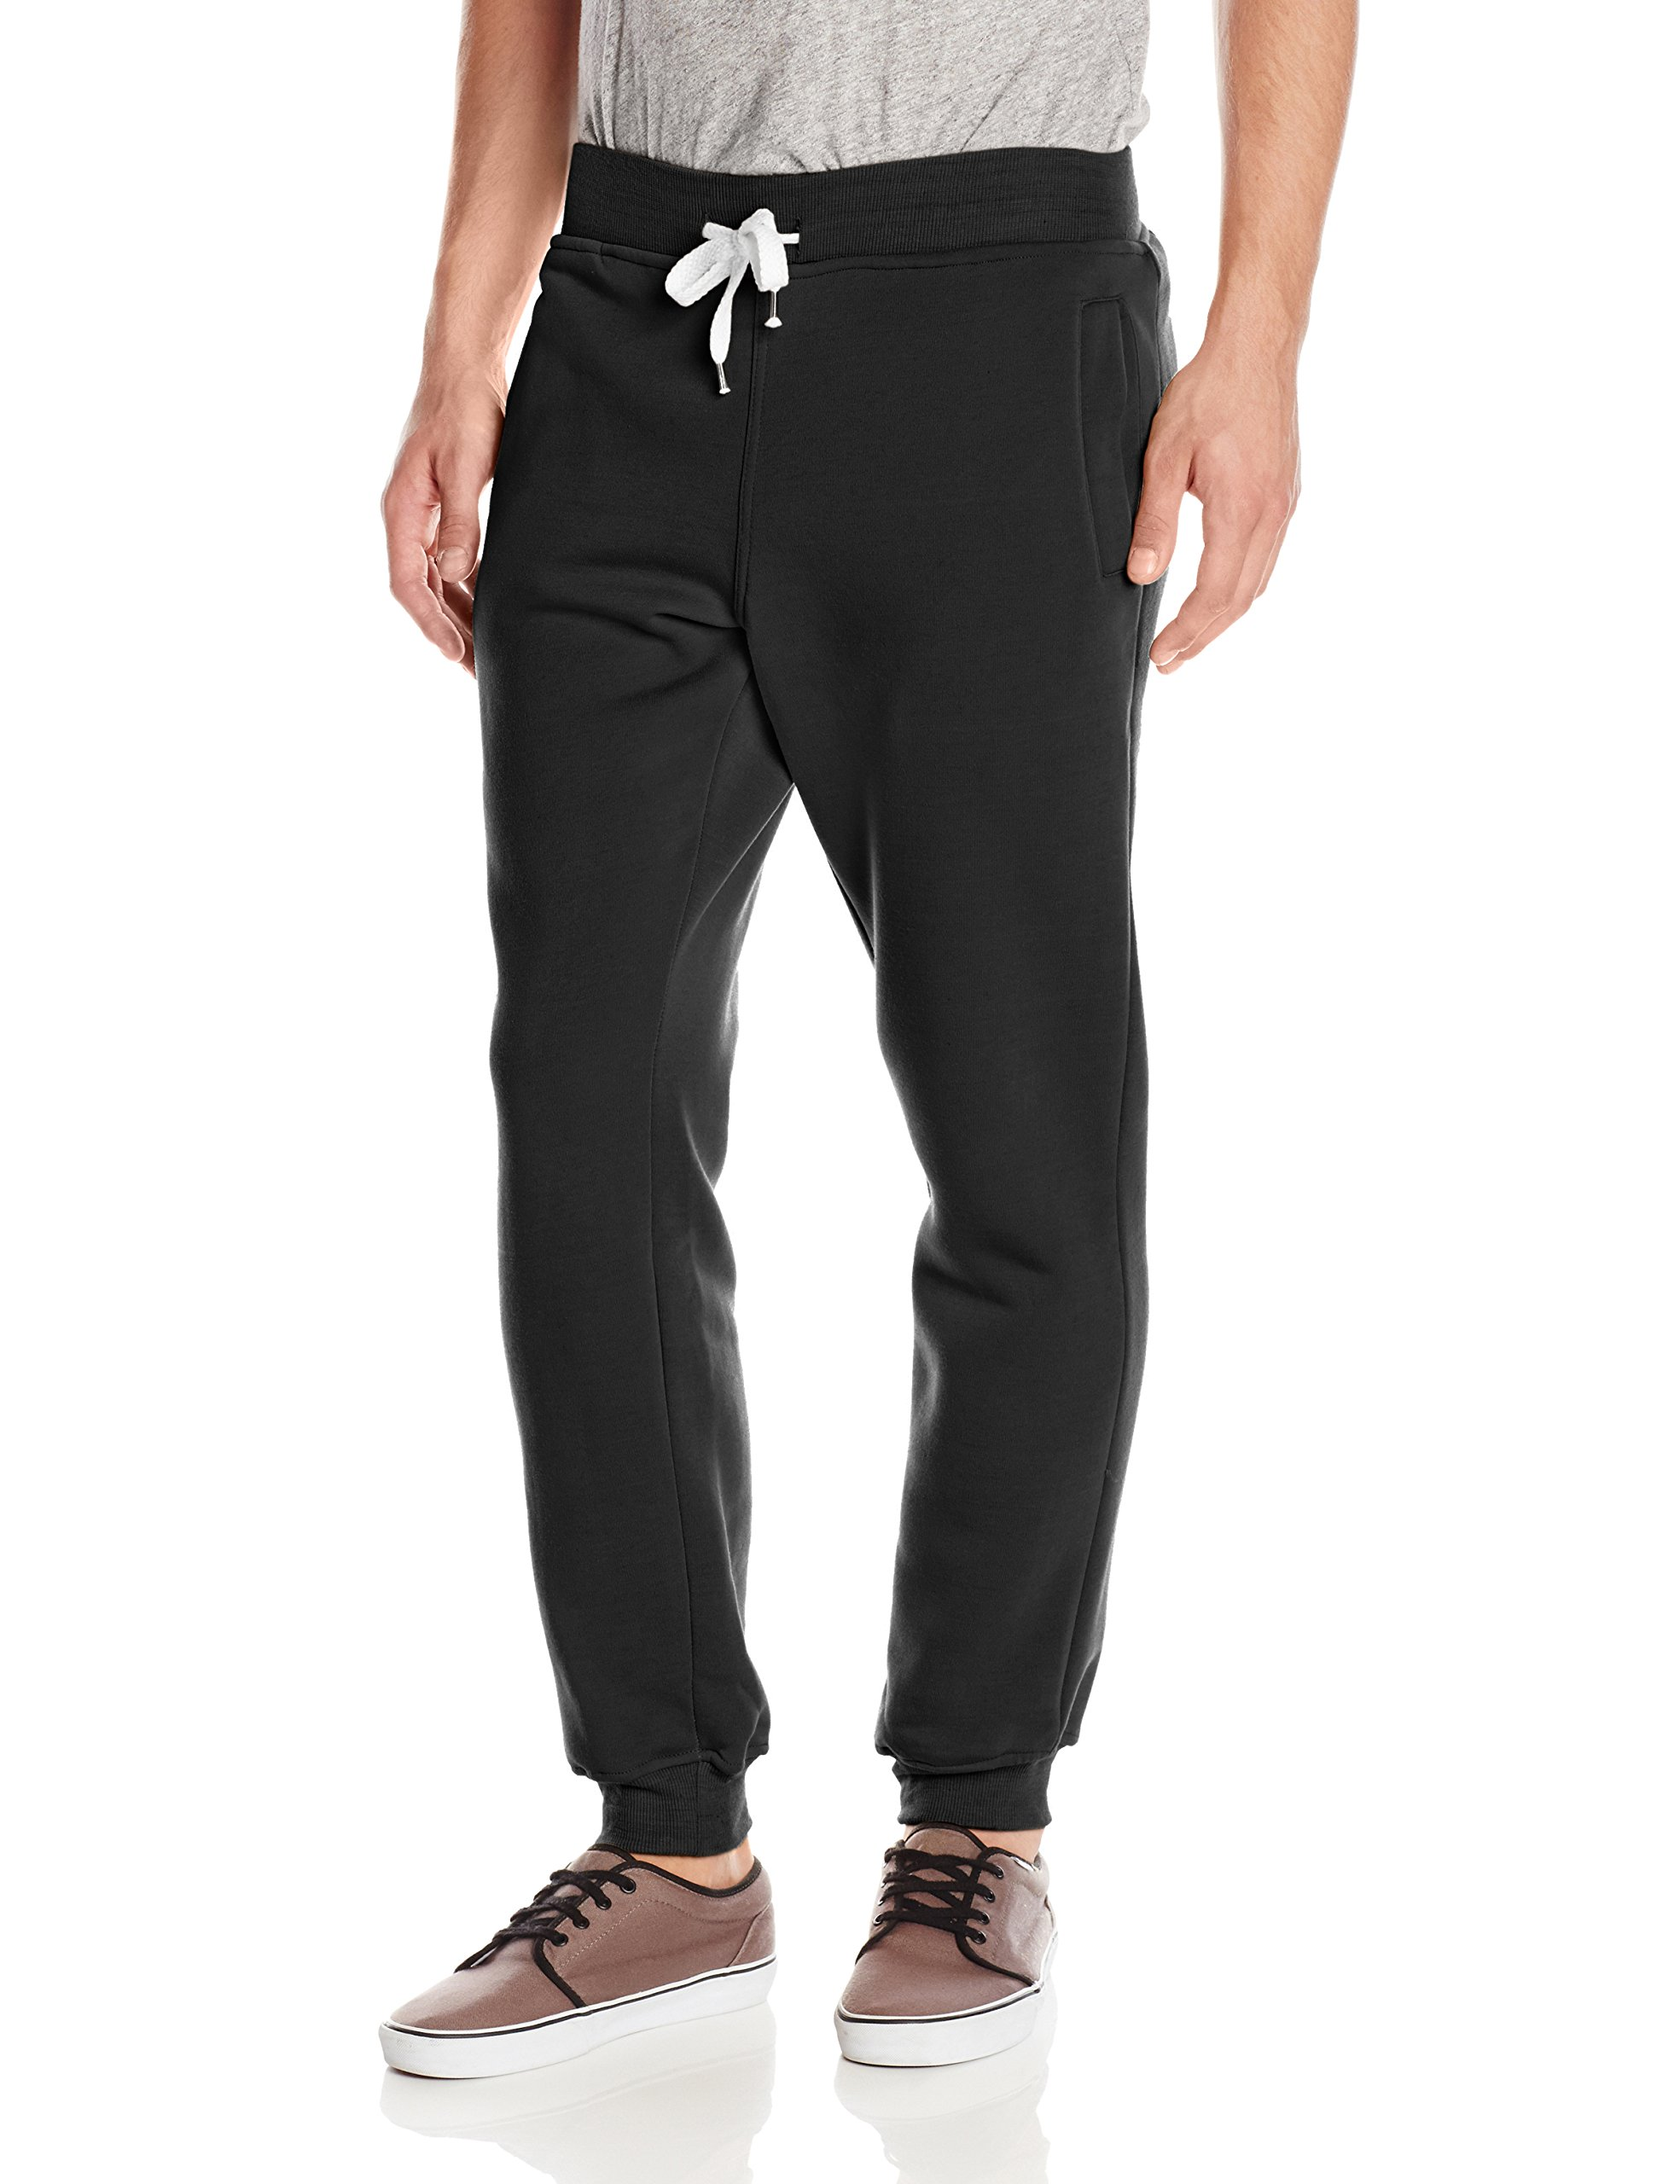 Southpole Men's big-tall Active Basic Jogger Fleece Pants, Black, 3XL,